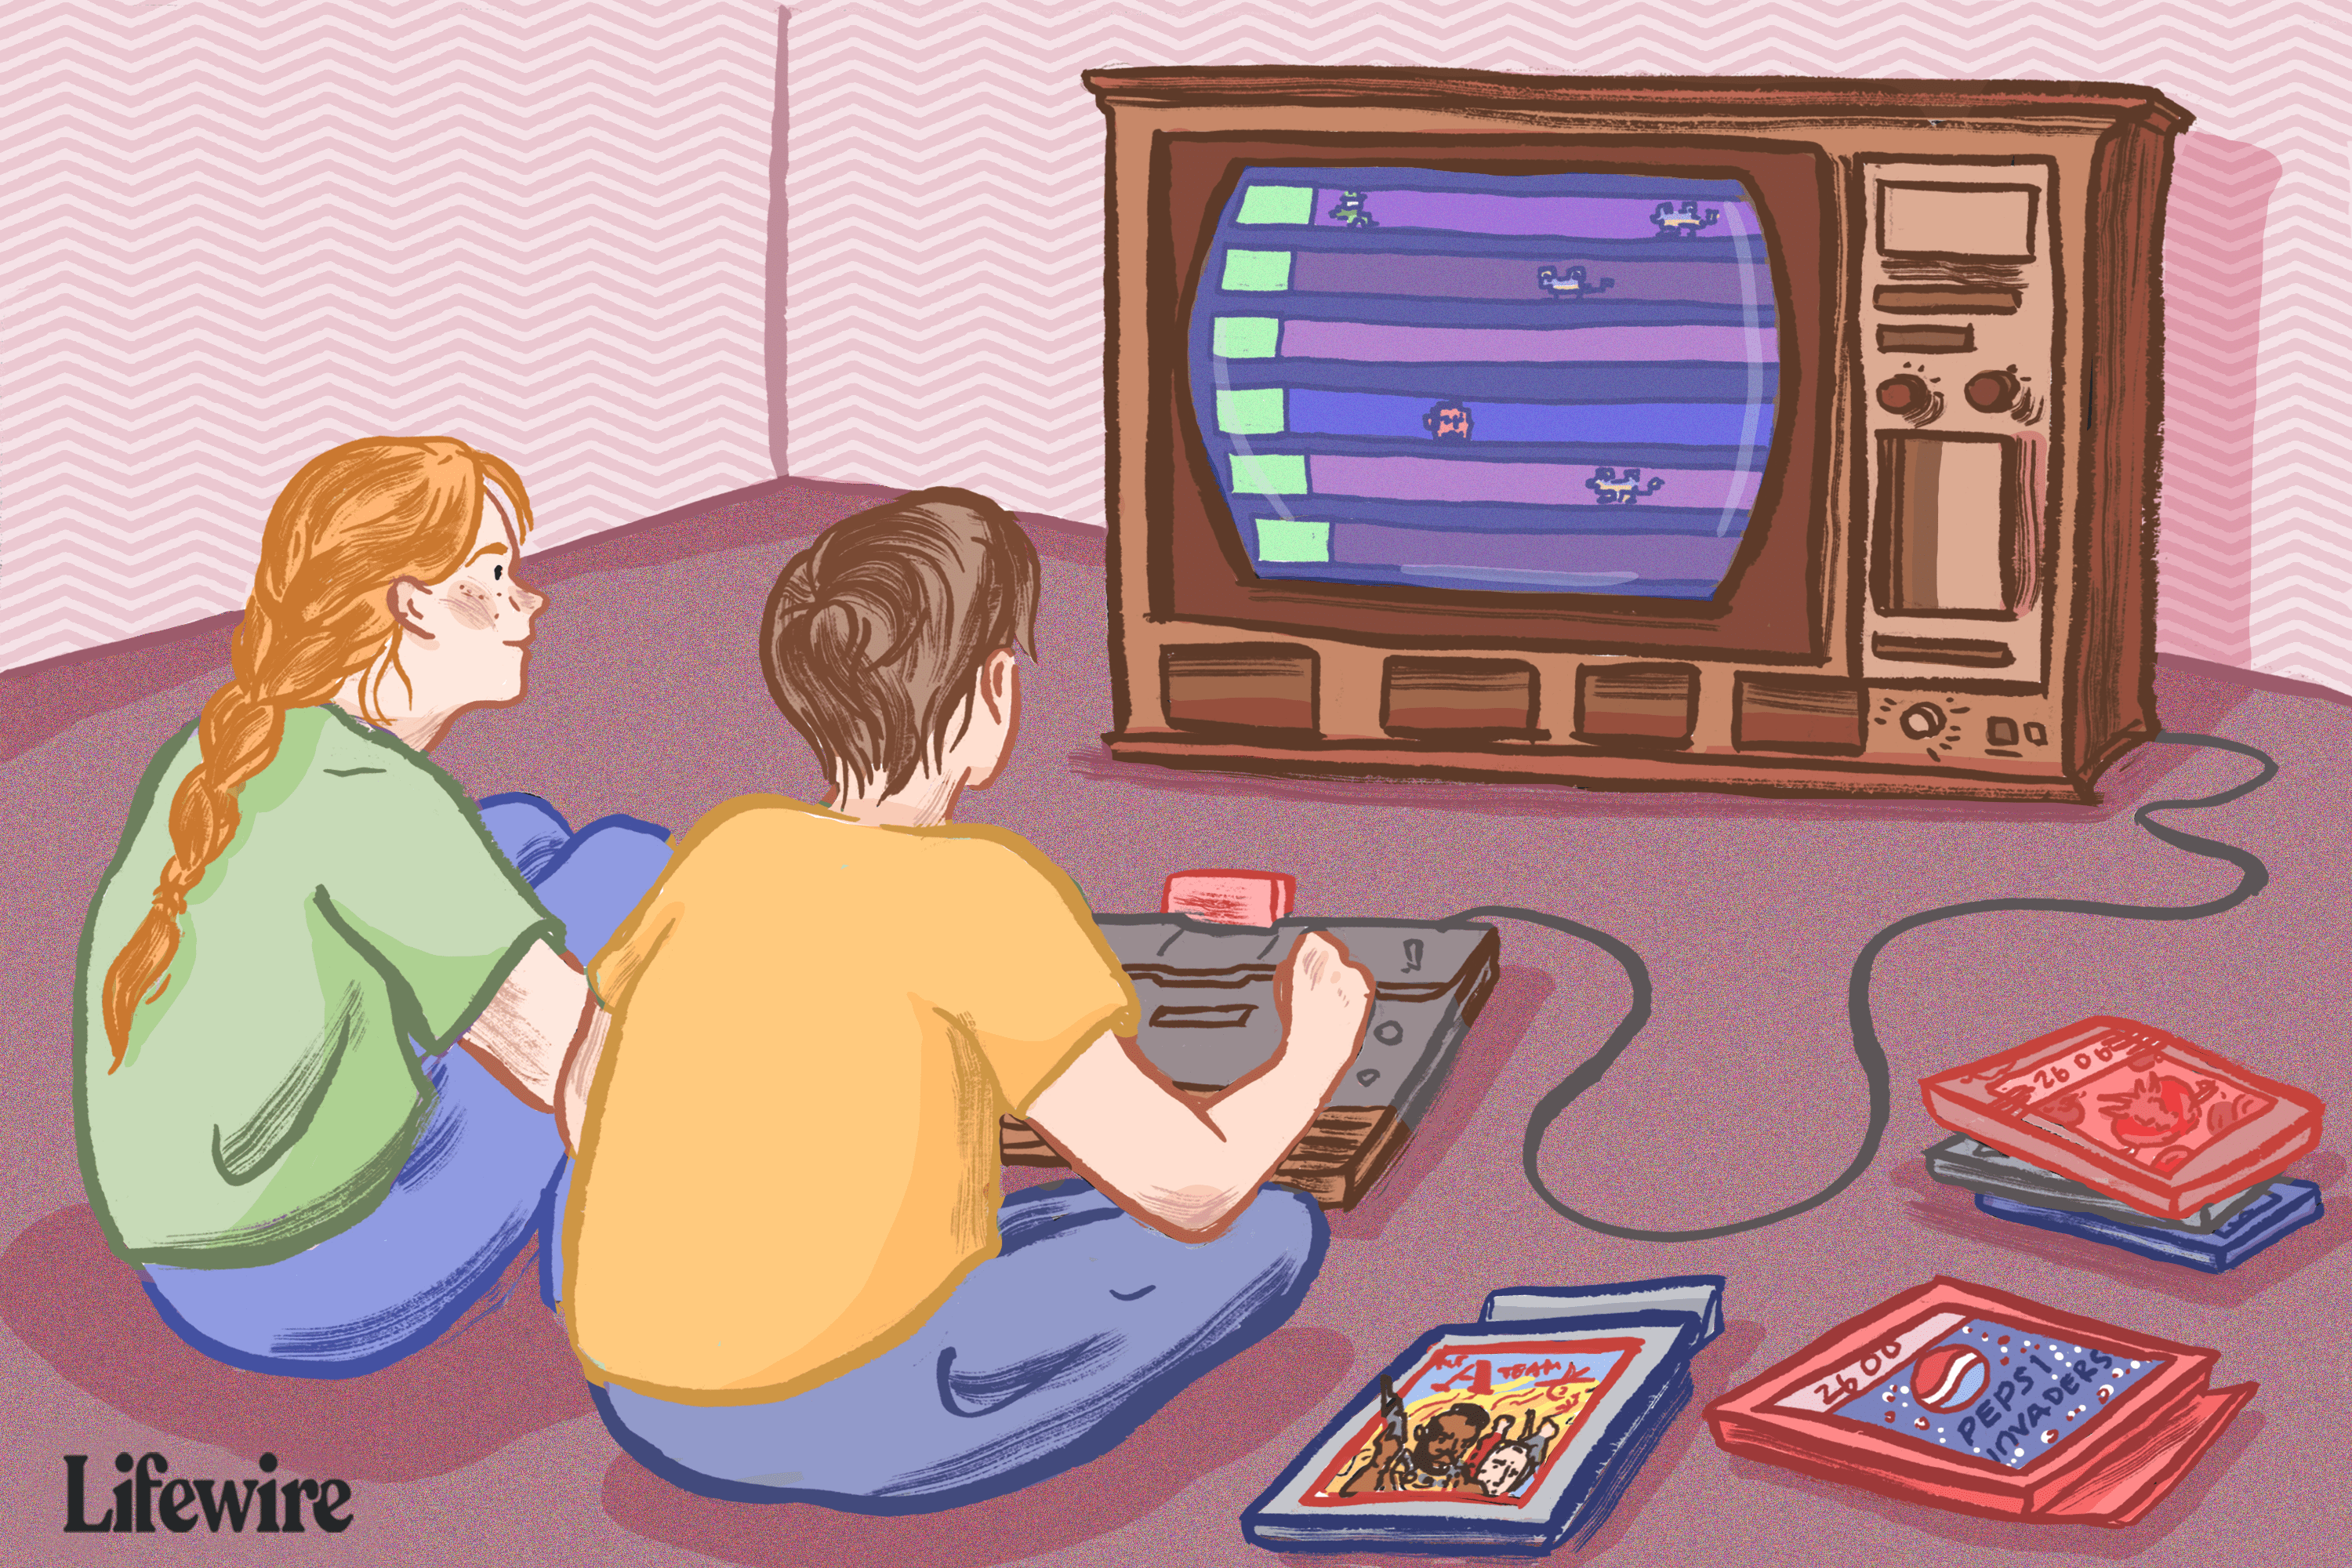 Two kids playing Atari games on a console TV